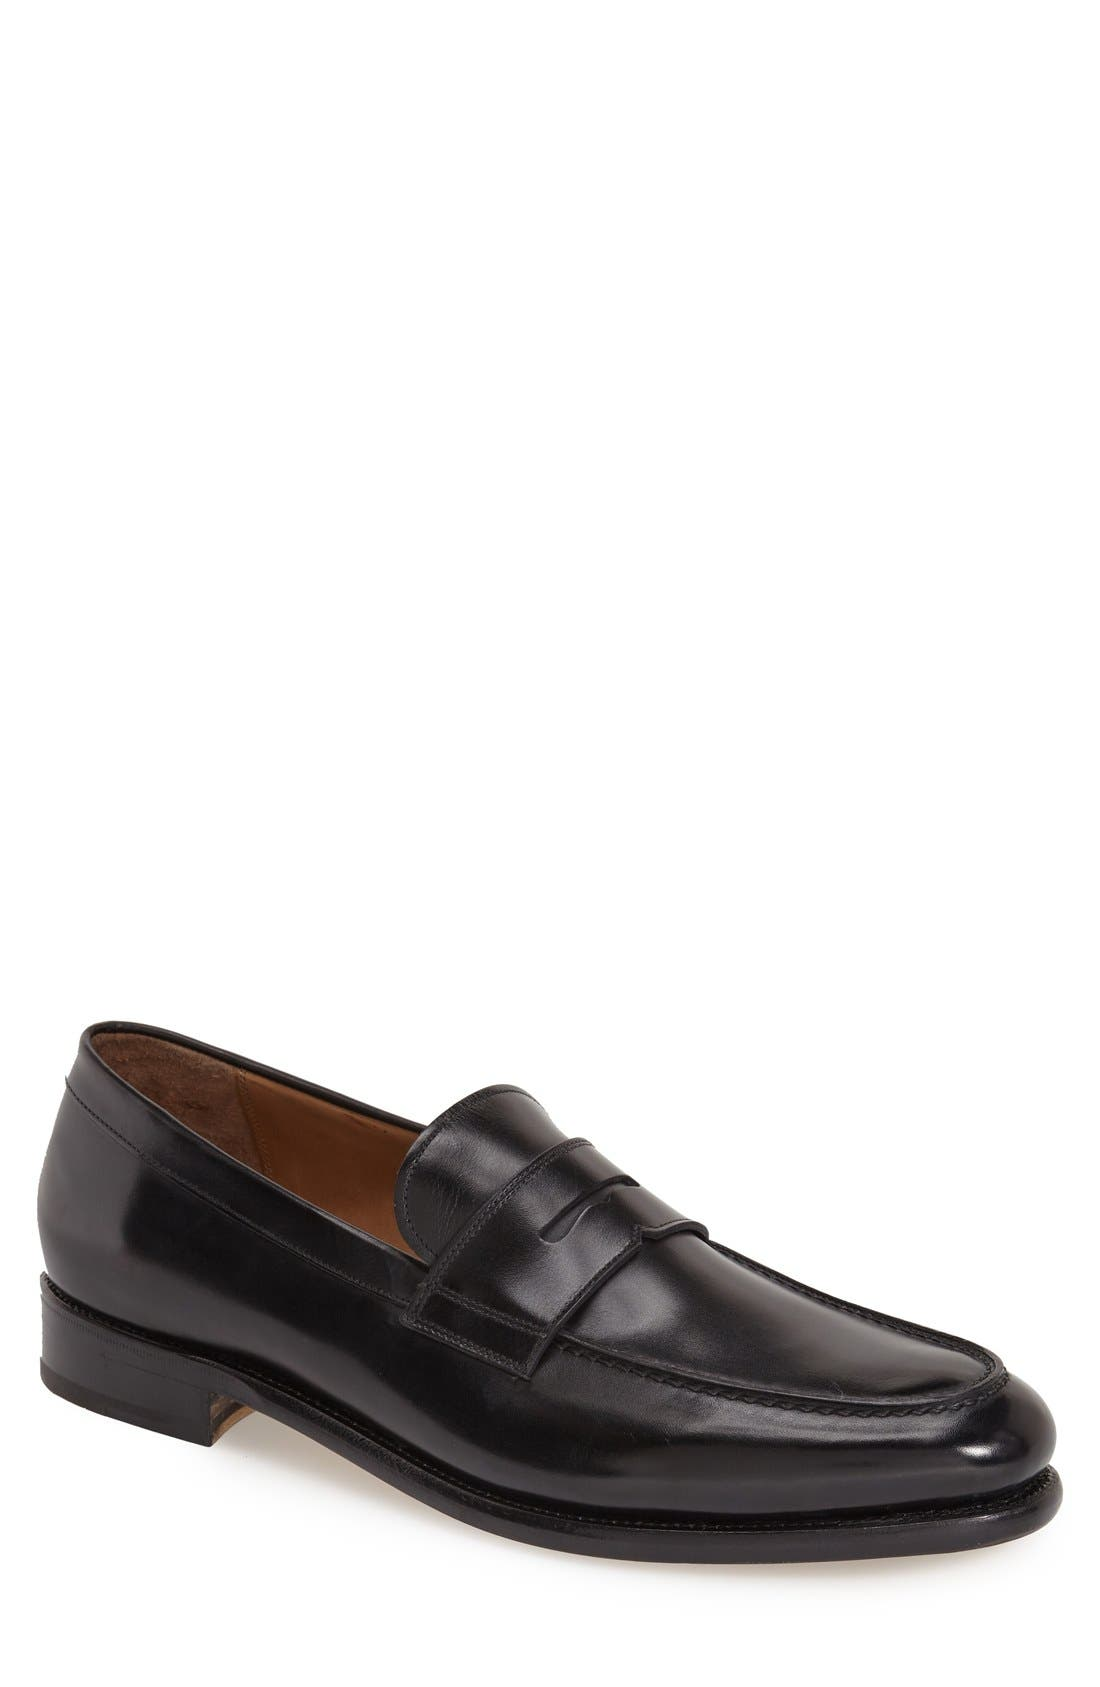 'Rinaldo' Penny Loafer,                         Main,                         color, Nero Leather